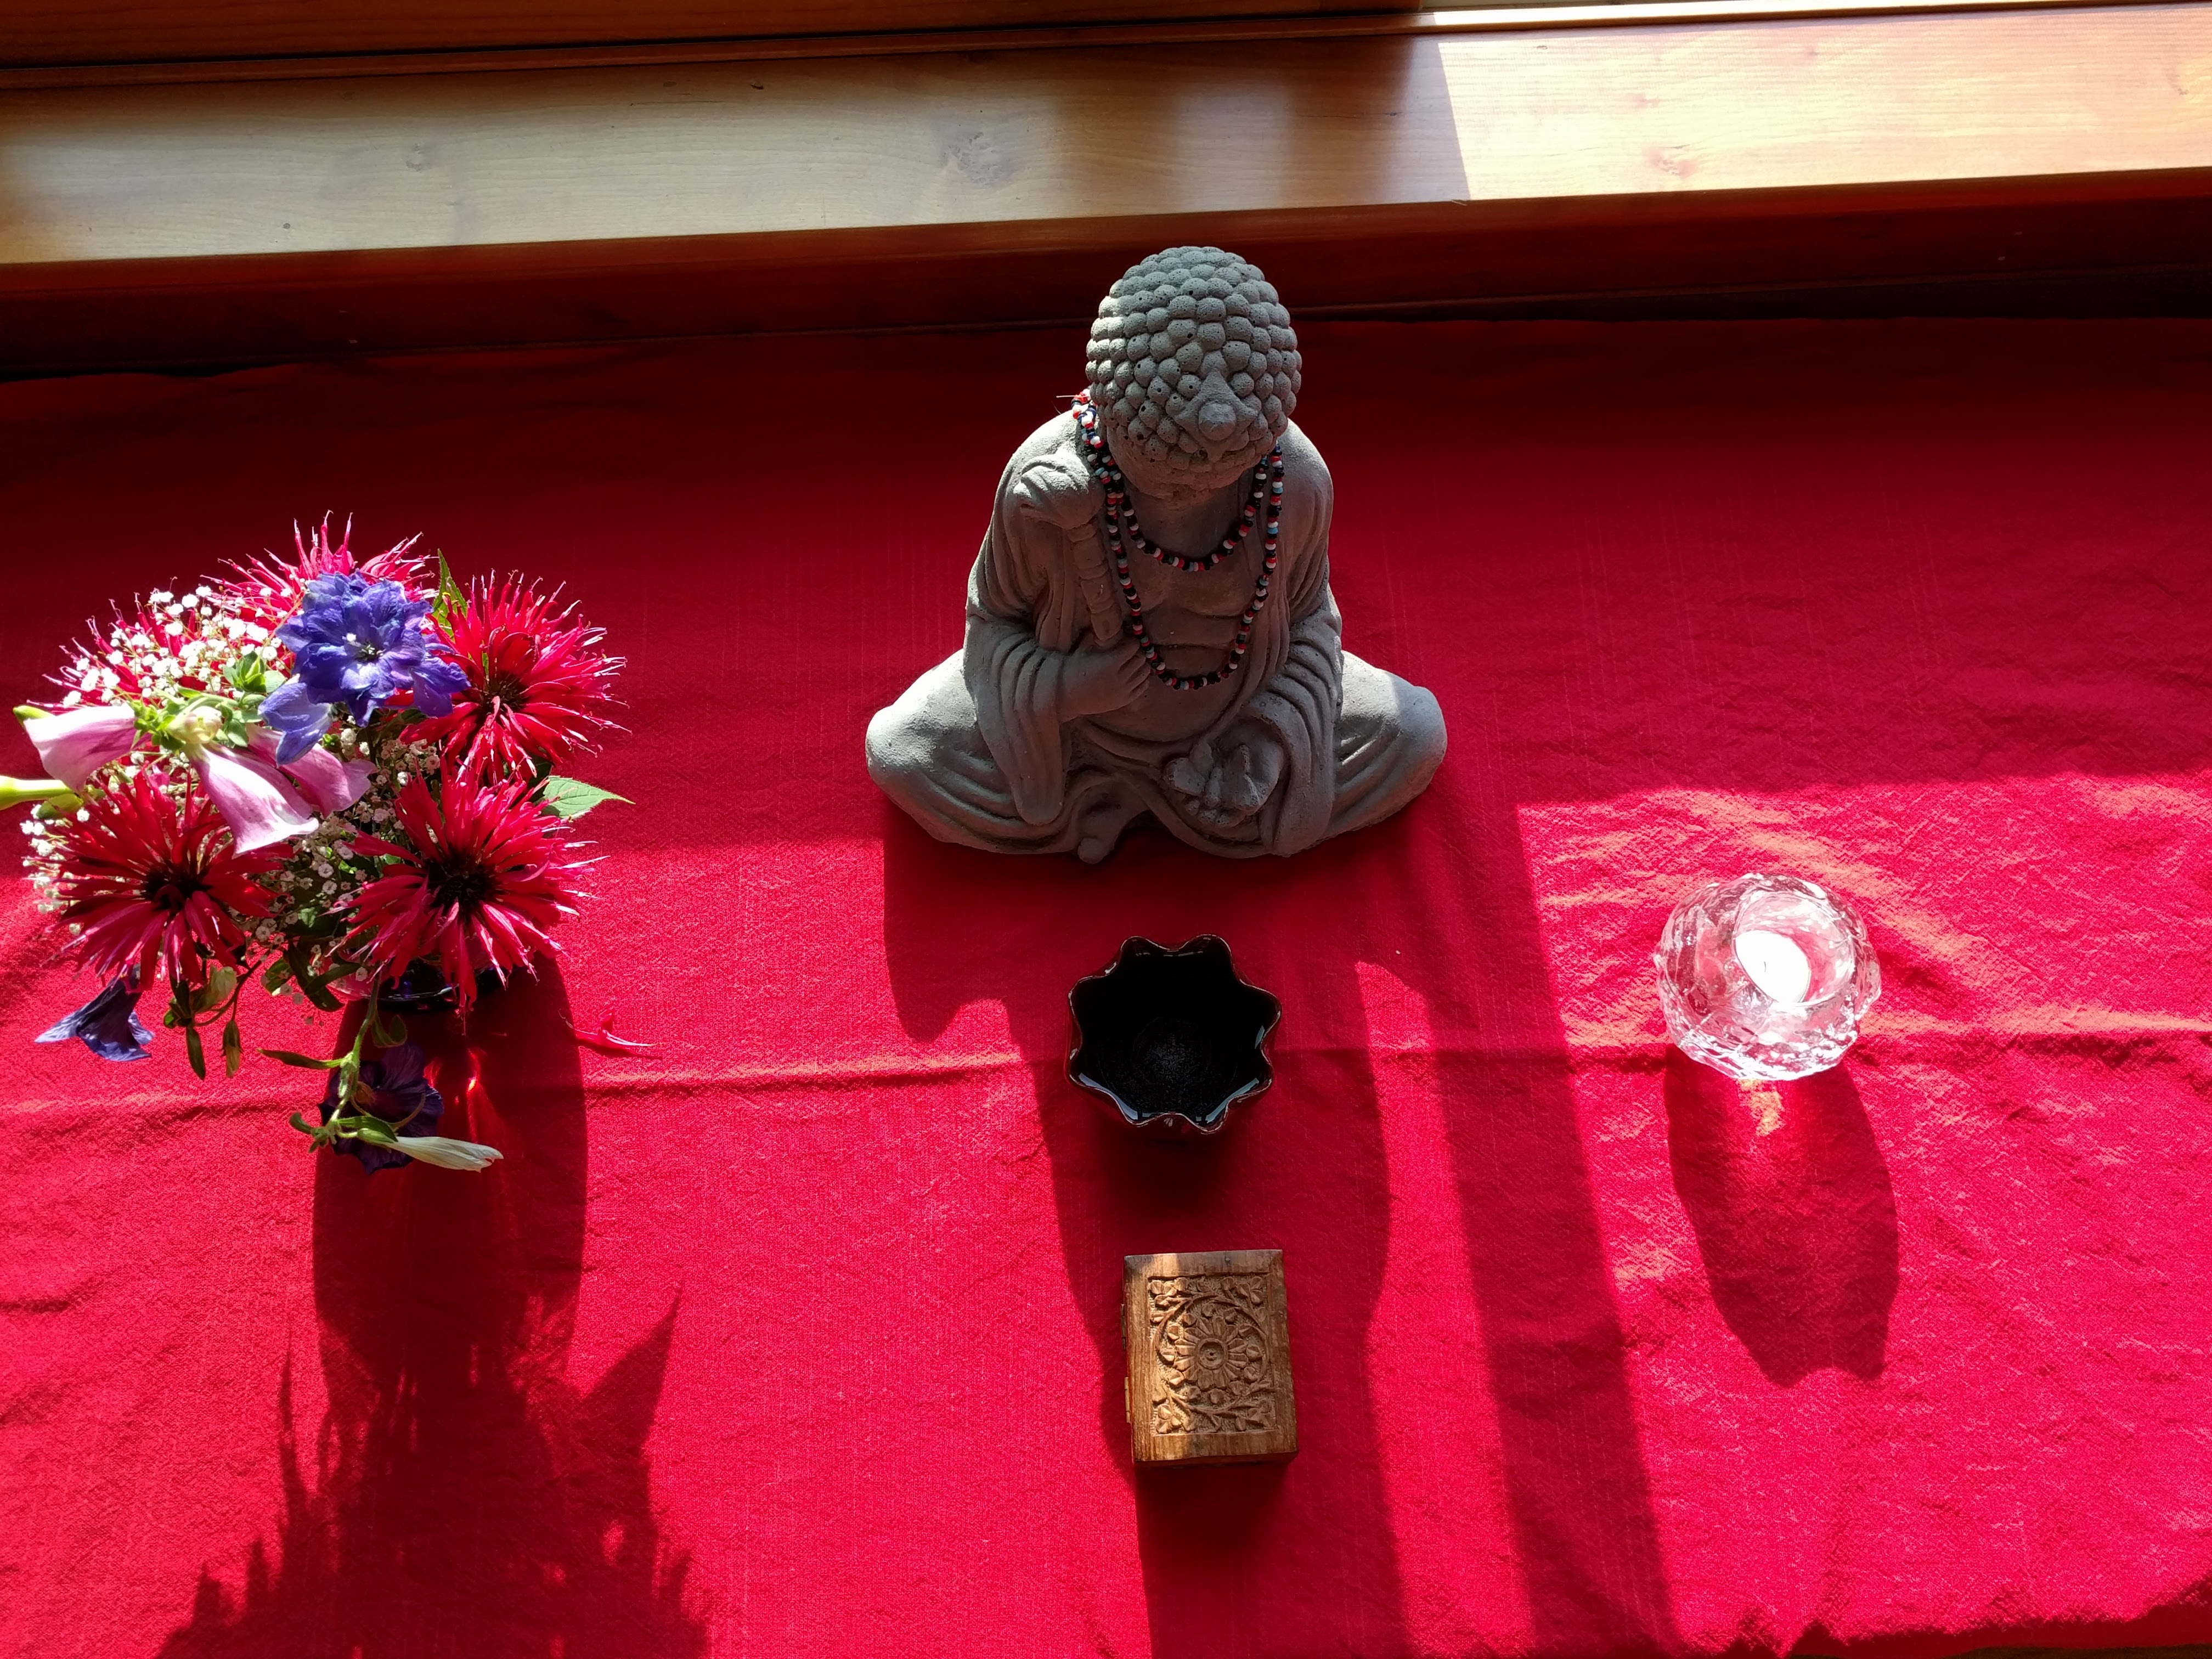 A small stone Buddha flanked by a small summer bouquet of flowers and a tealight candle inside a rough glass container.